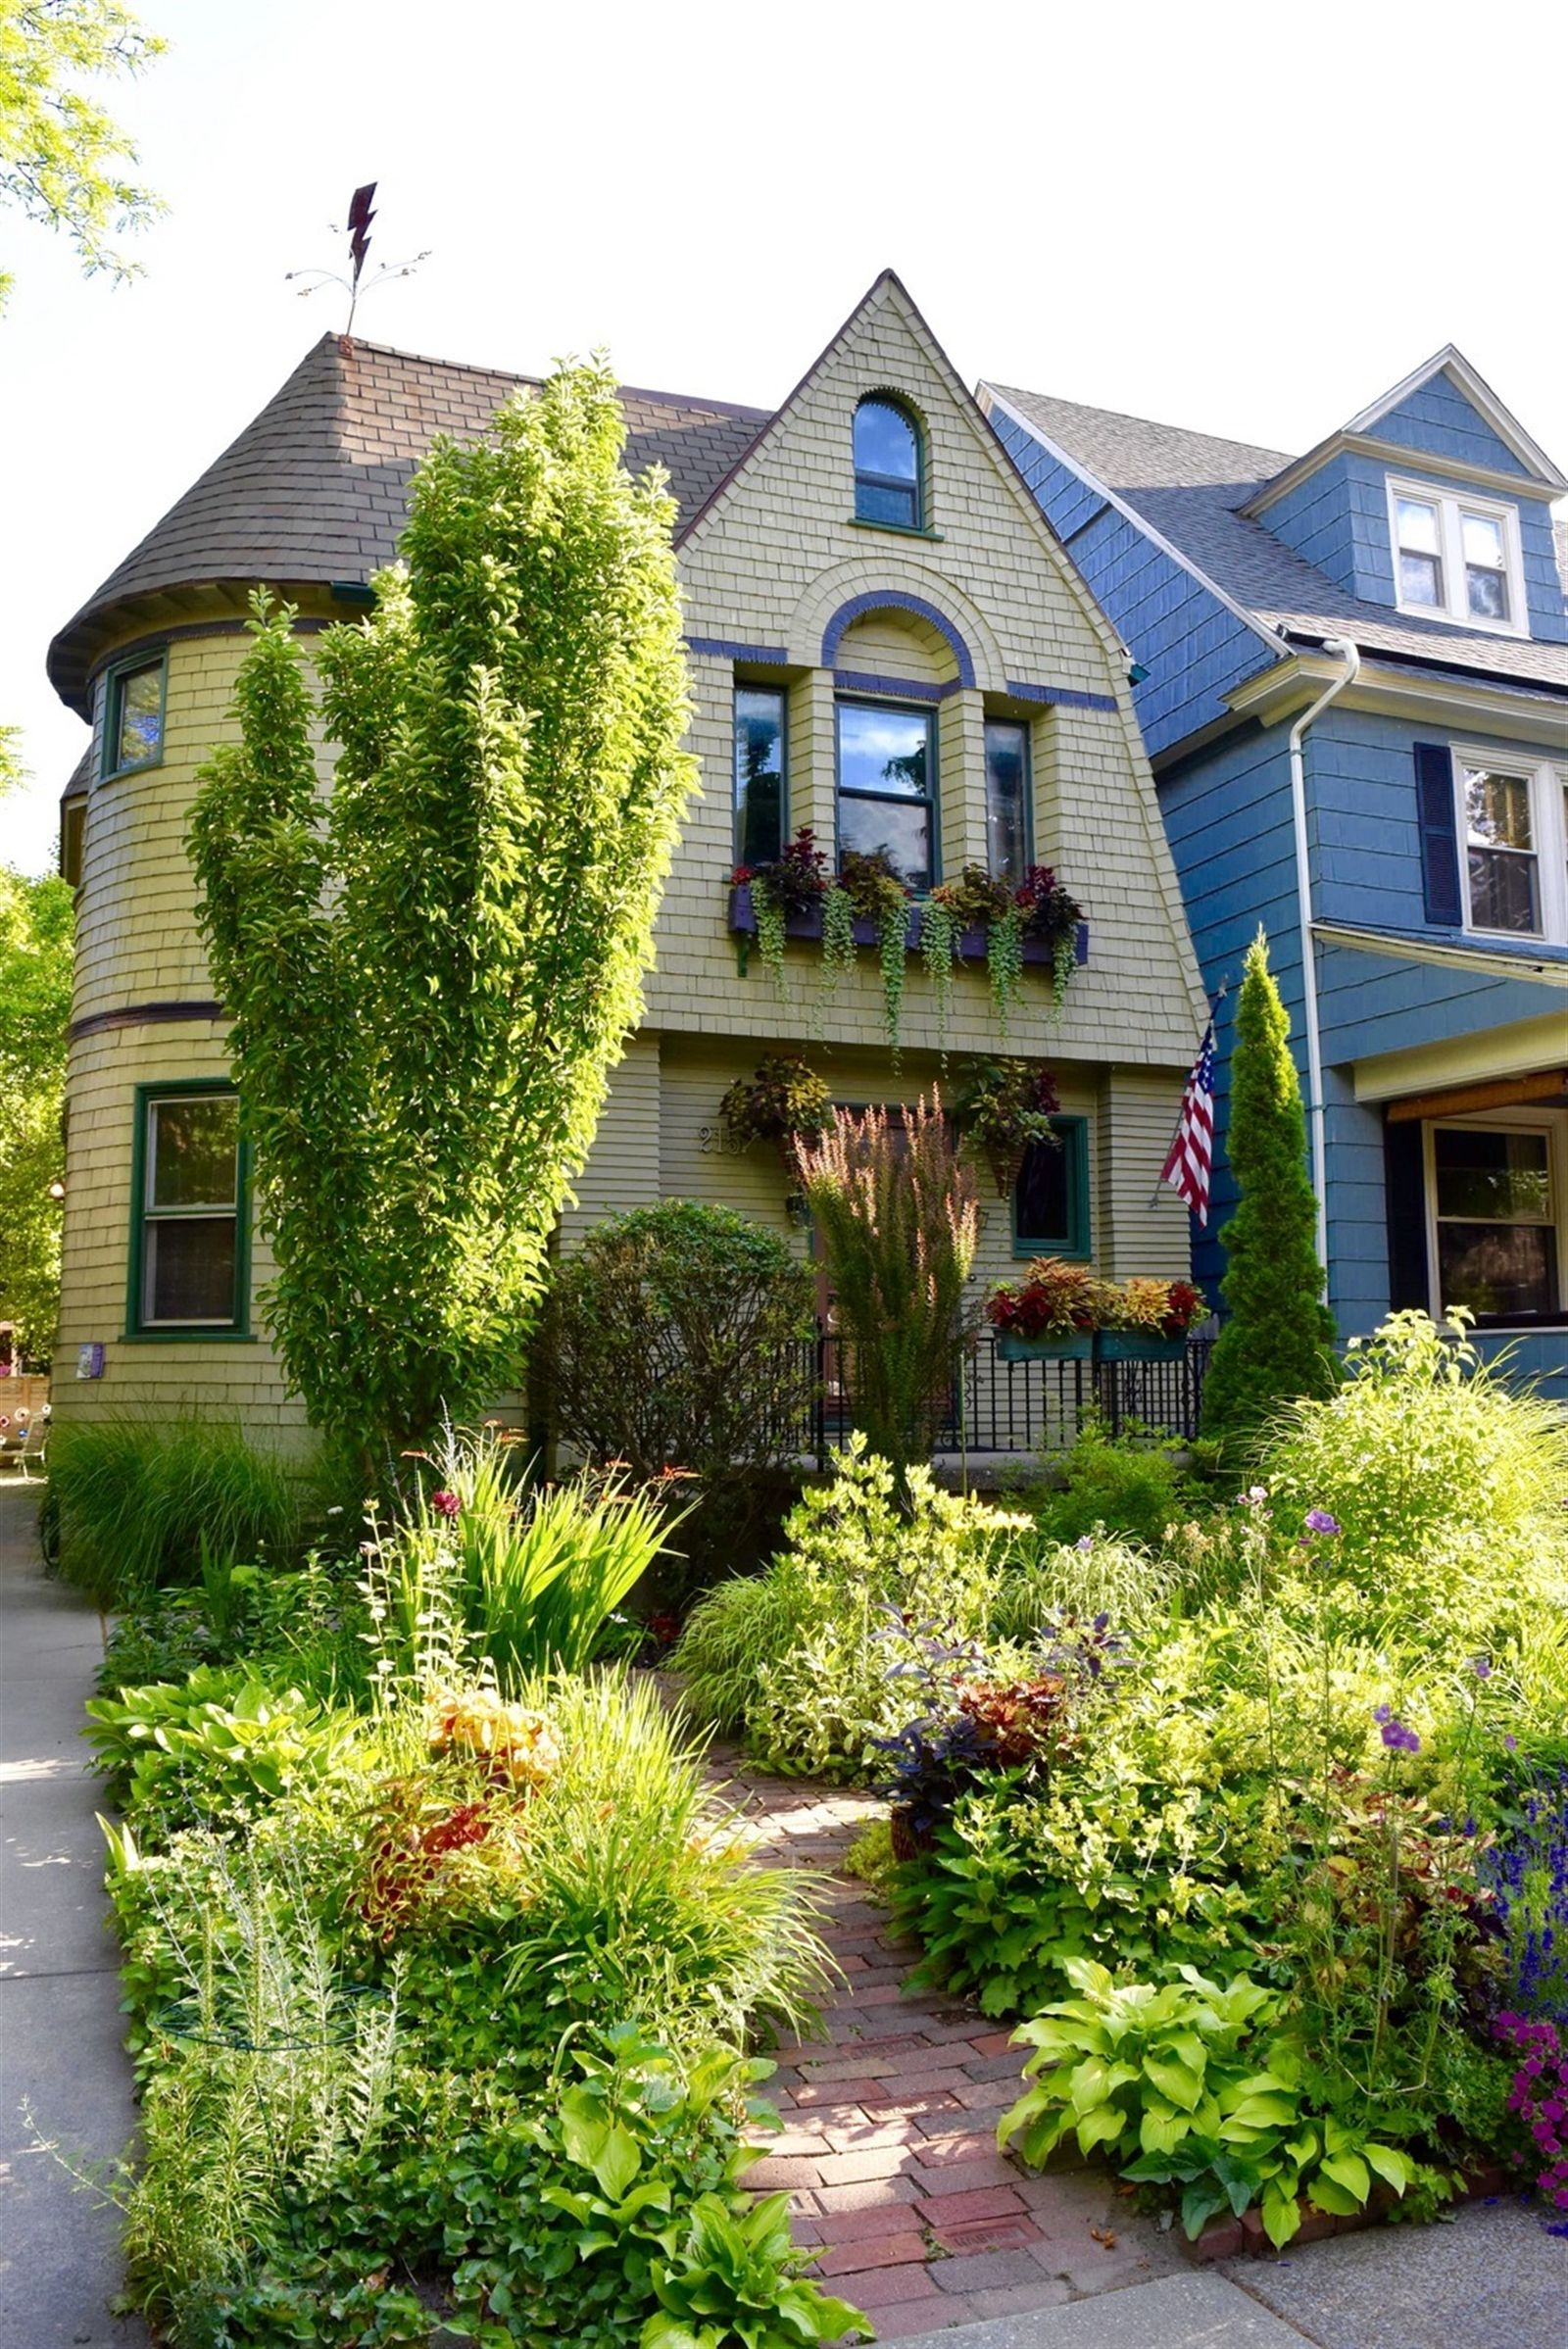 Jim and Leslie Charlier's home in Buffalo's Delaware District is an 1897 Dutch colonial, with a gambrel roof and rounded half tower.